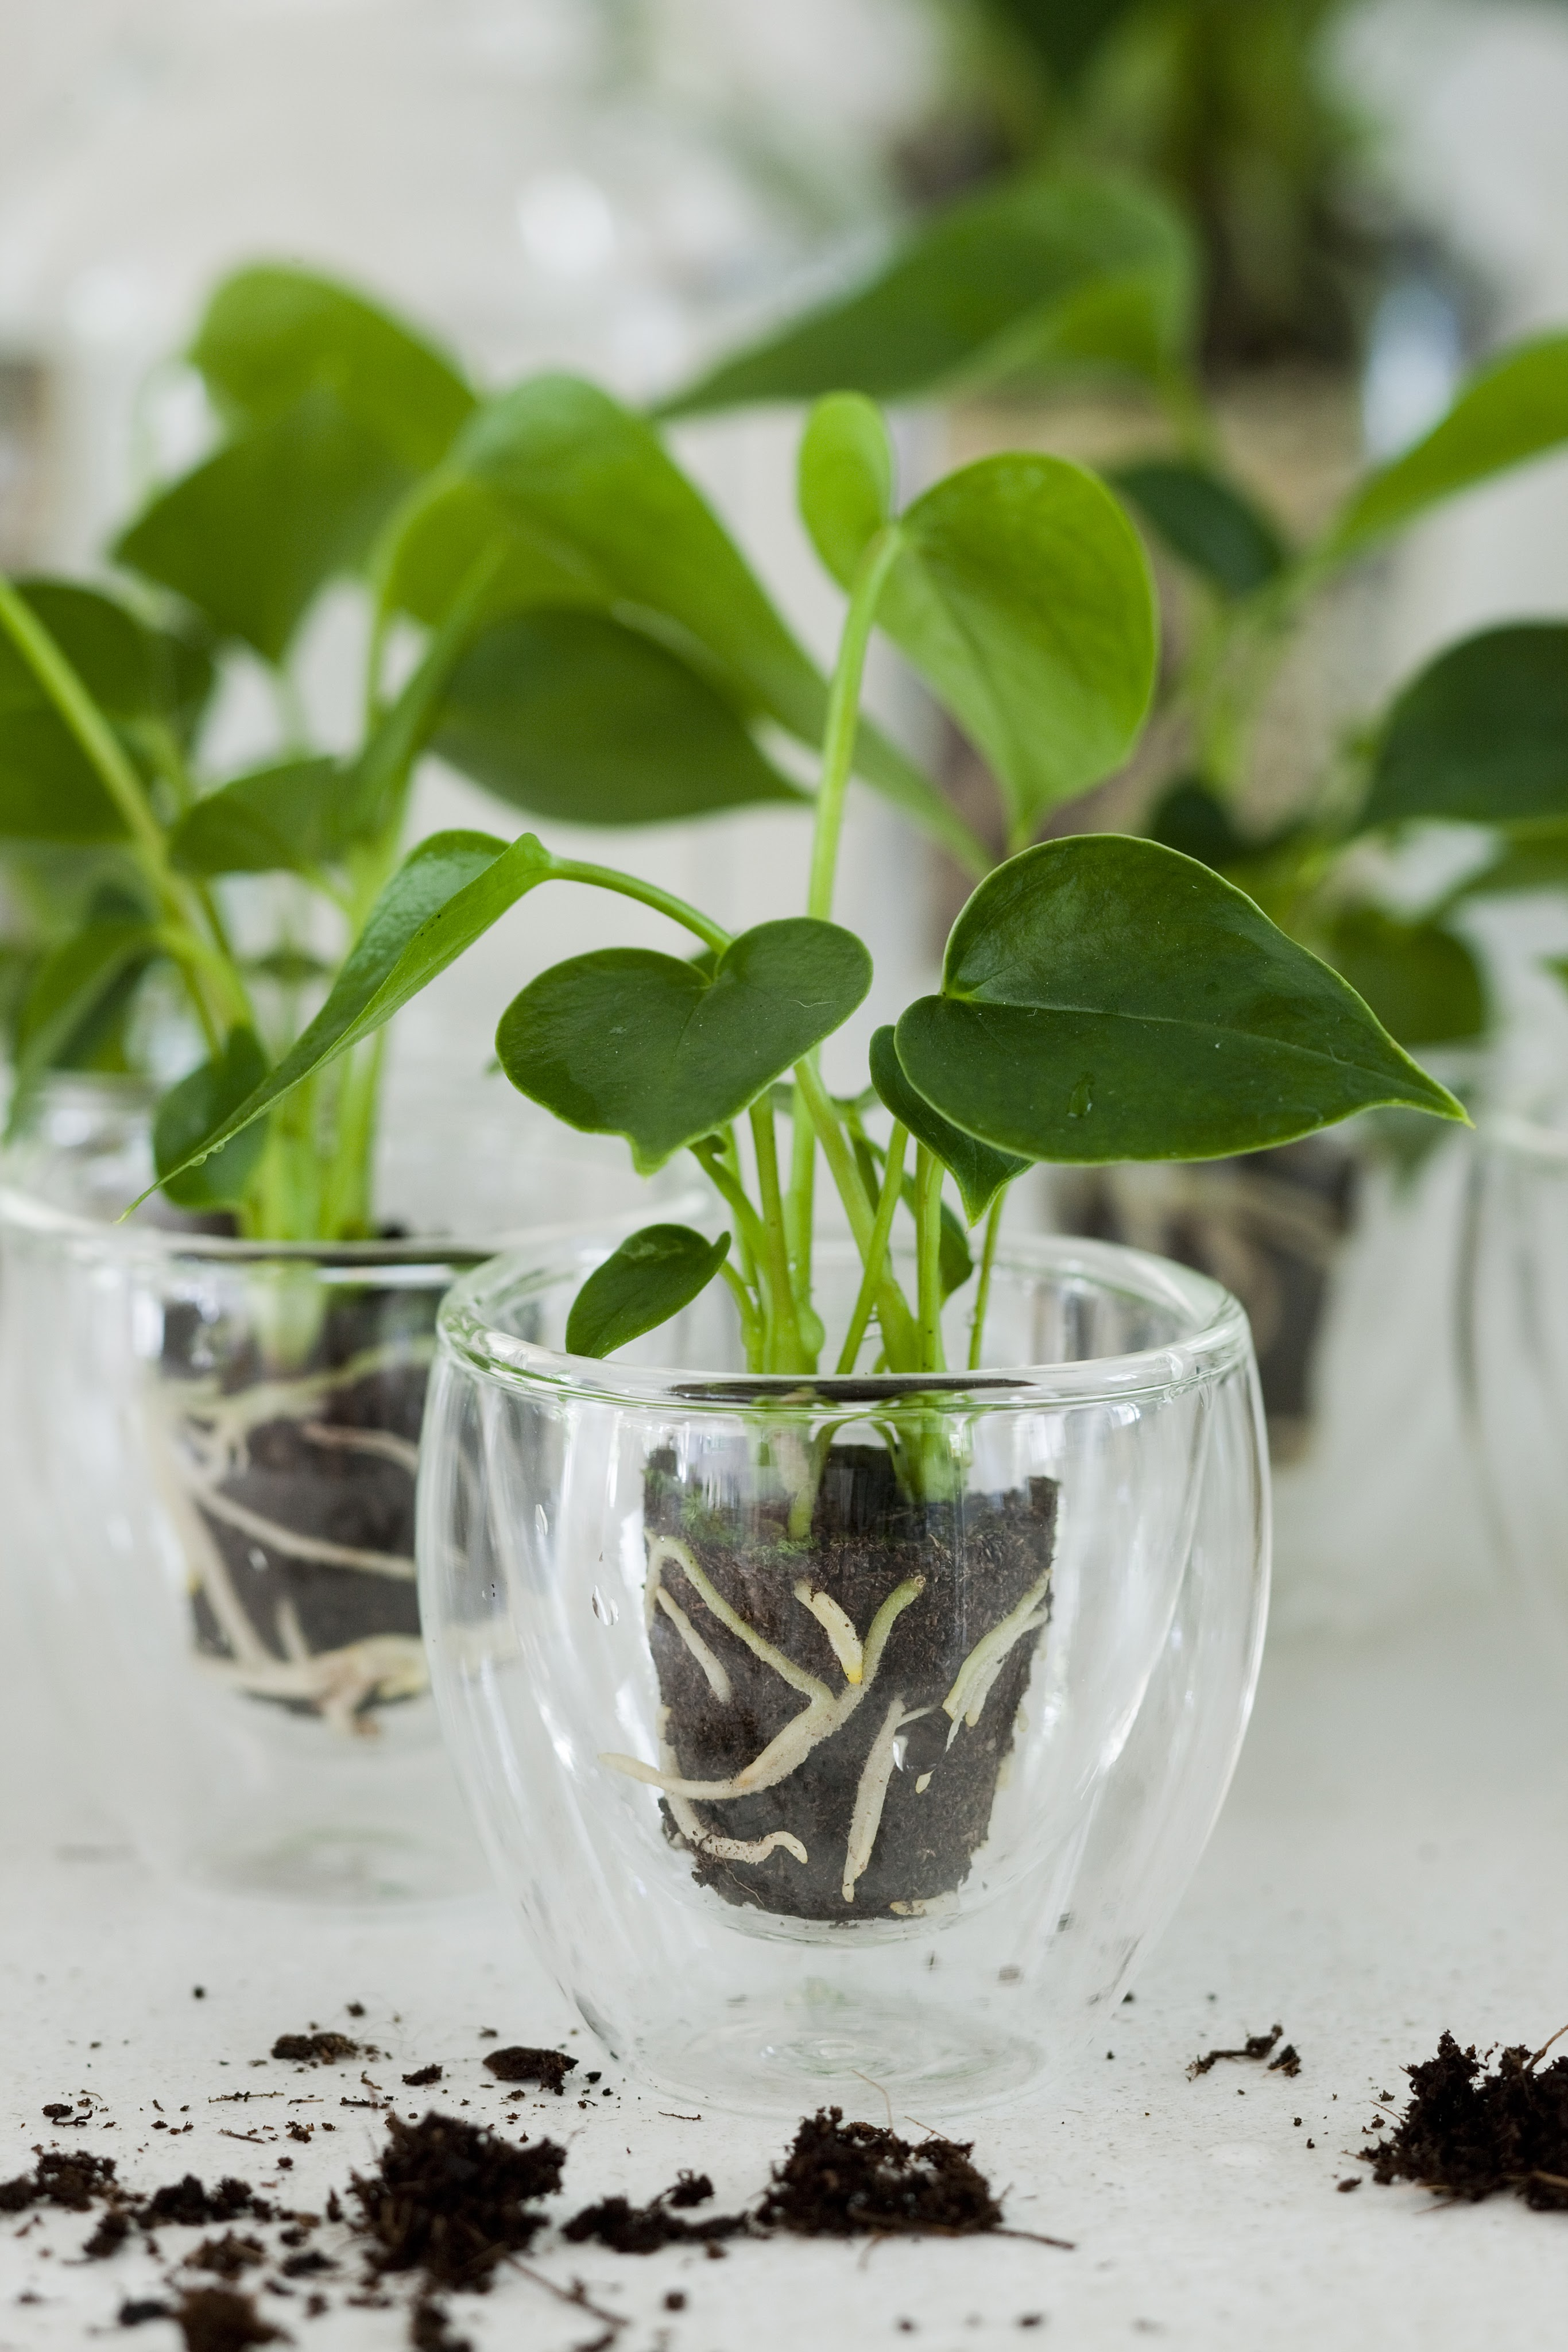 Garden Bush: How To Propagate Anthuriums By Cuttings?